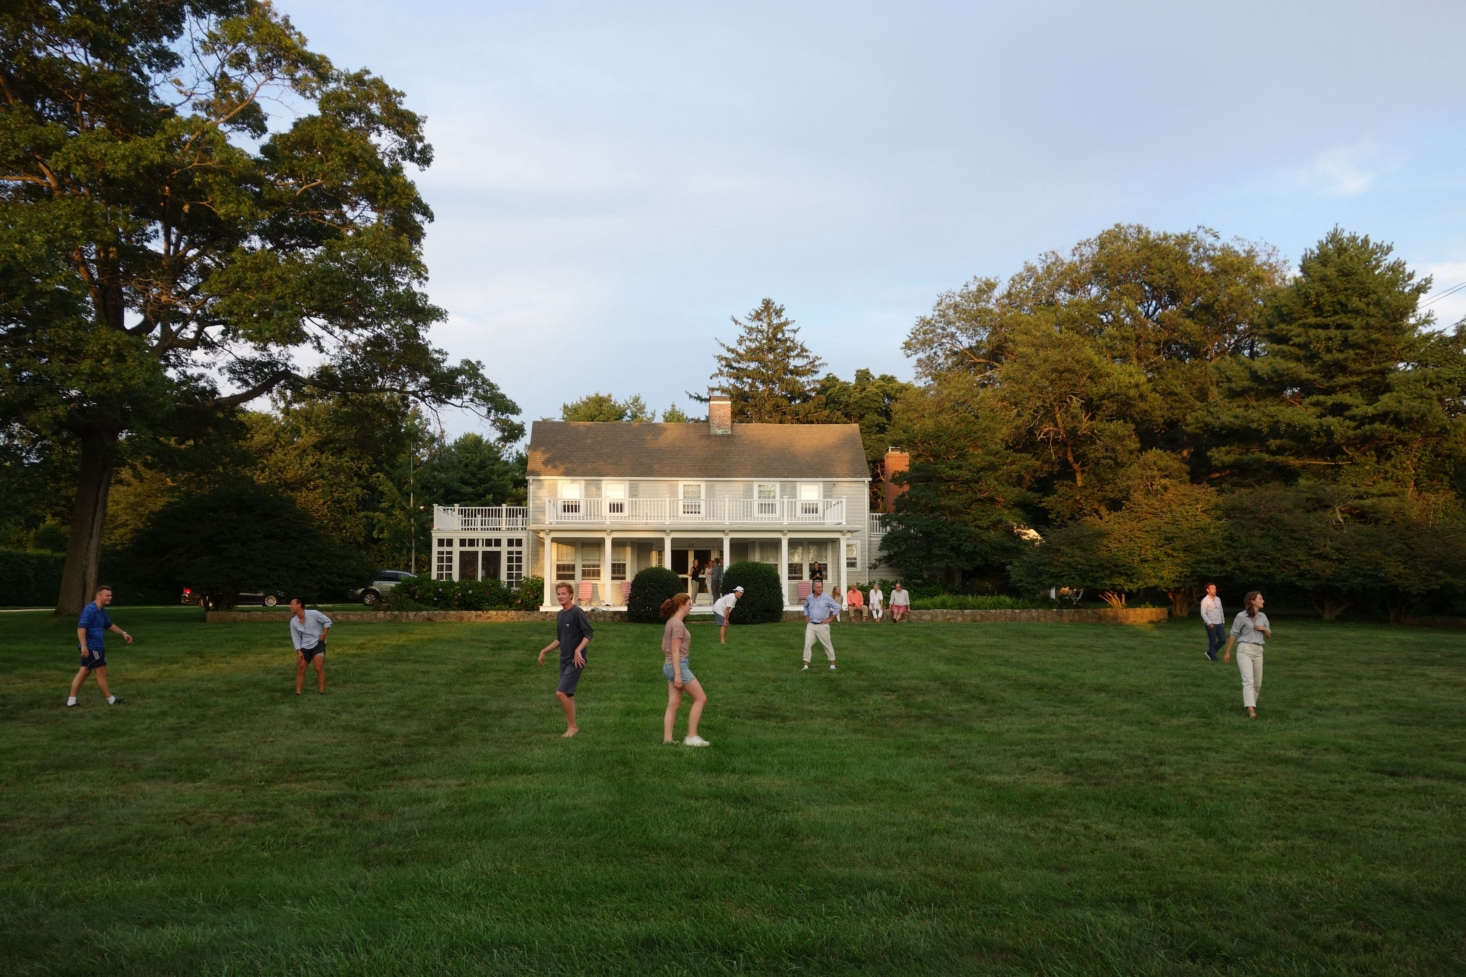 The house sits on an acre and a half of rolling green lawn; ideal for summer games.